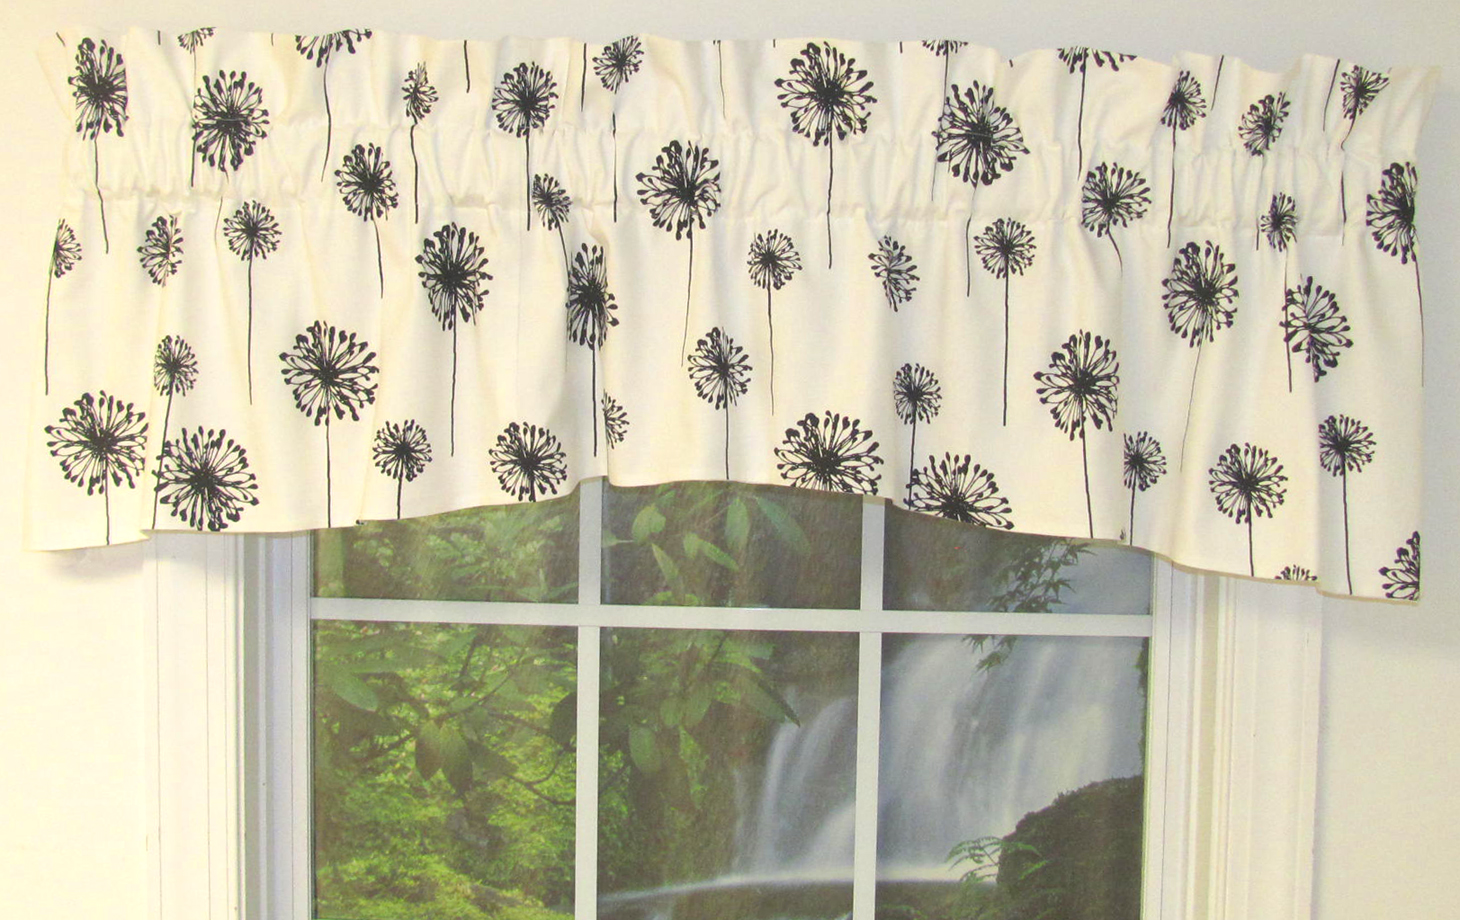 pictures walls and curtainscream buffalo black cream checkcream grey fearsome size plaidrtainsblack with curtains kitchenrtains decor tan of kitchen shower beautiful full curtain white showerrtainscream inspirations